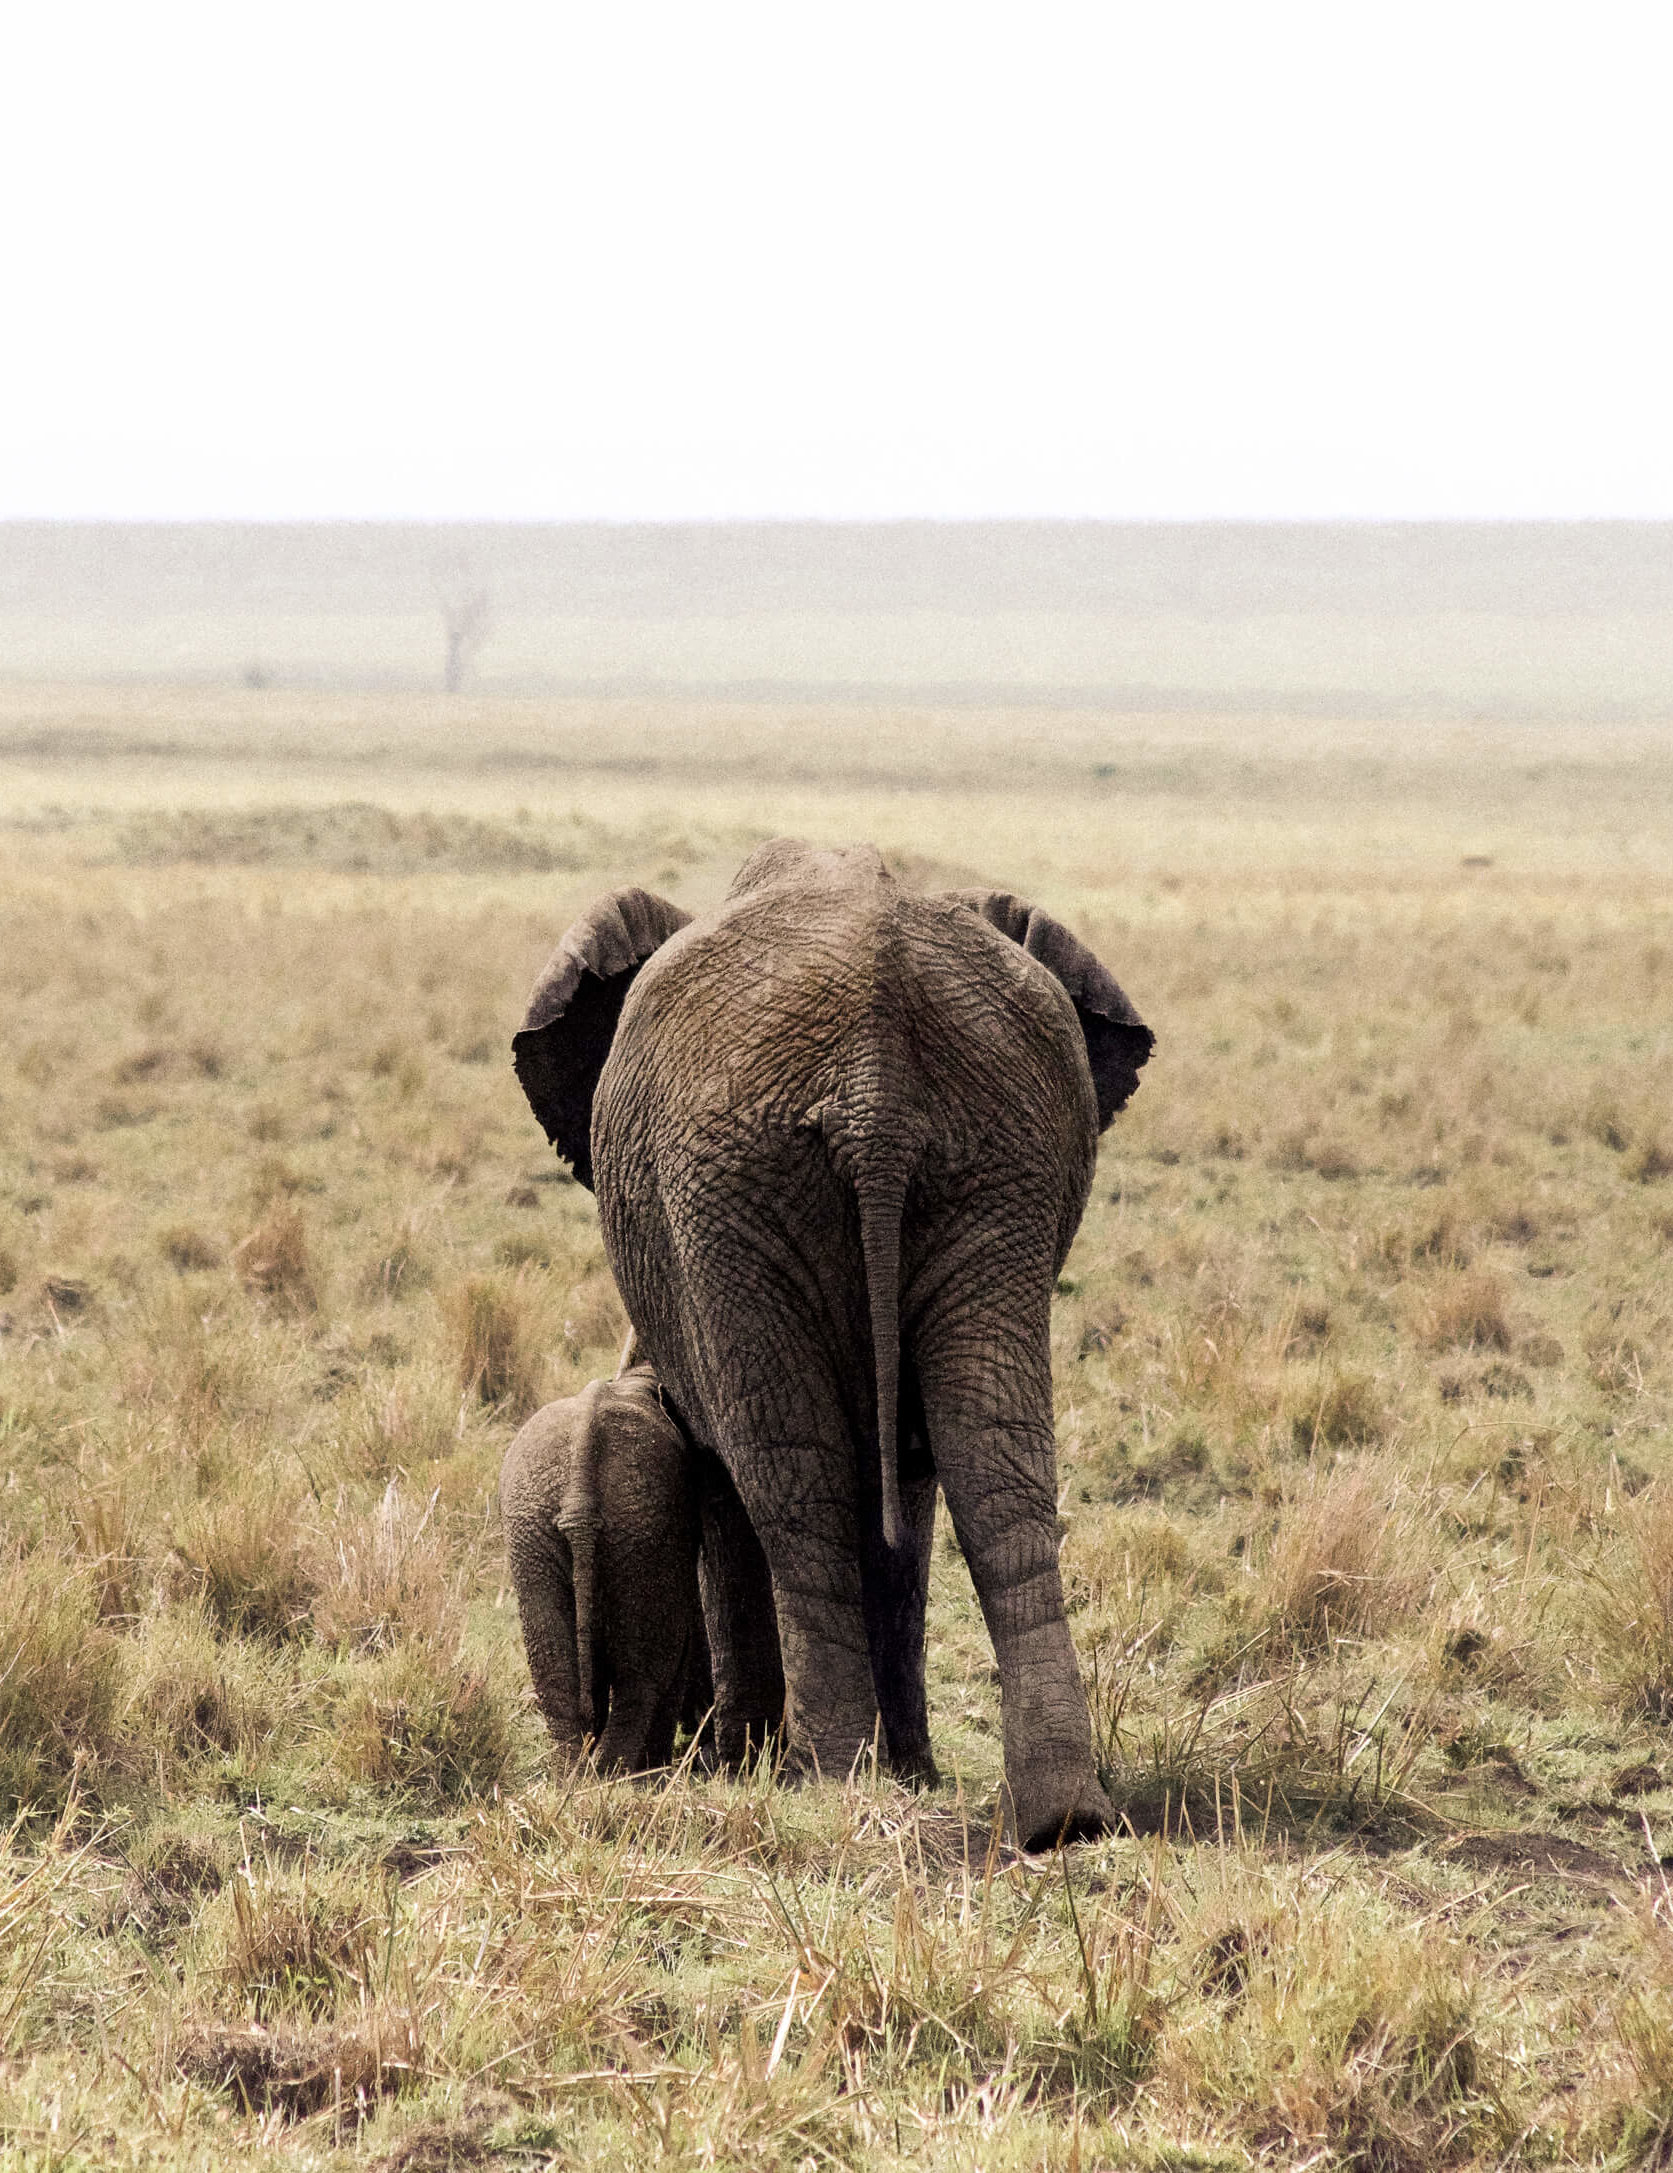 The back of a mother and baby elephant walking away from the camera into the horizon - Kenya wildlife photography